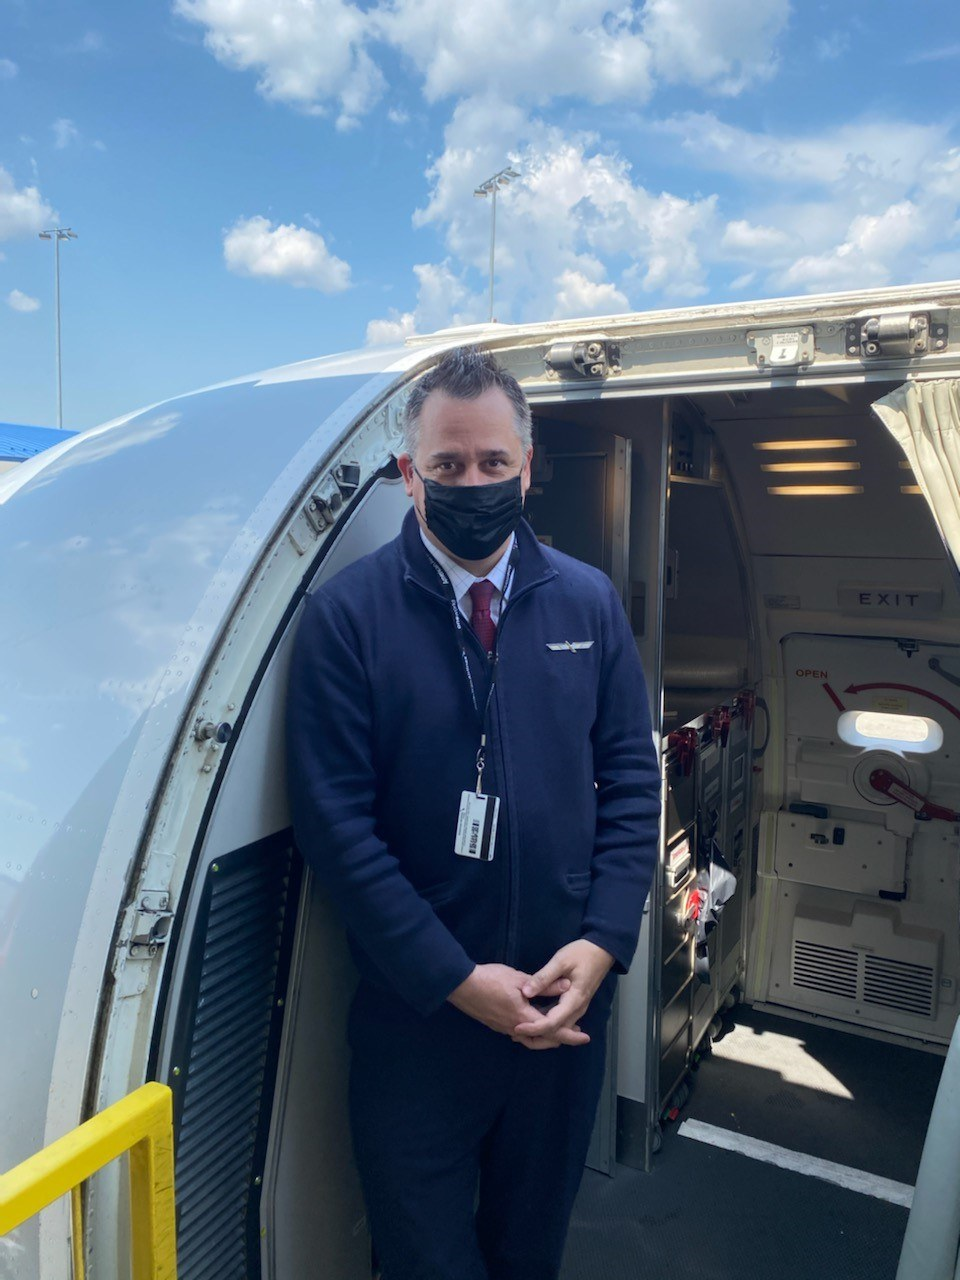 Michael Cruson standing in aircraft doorway with mask on